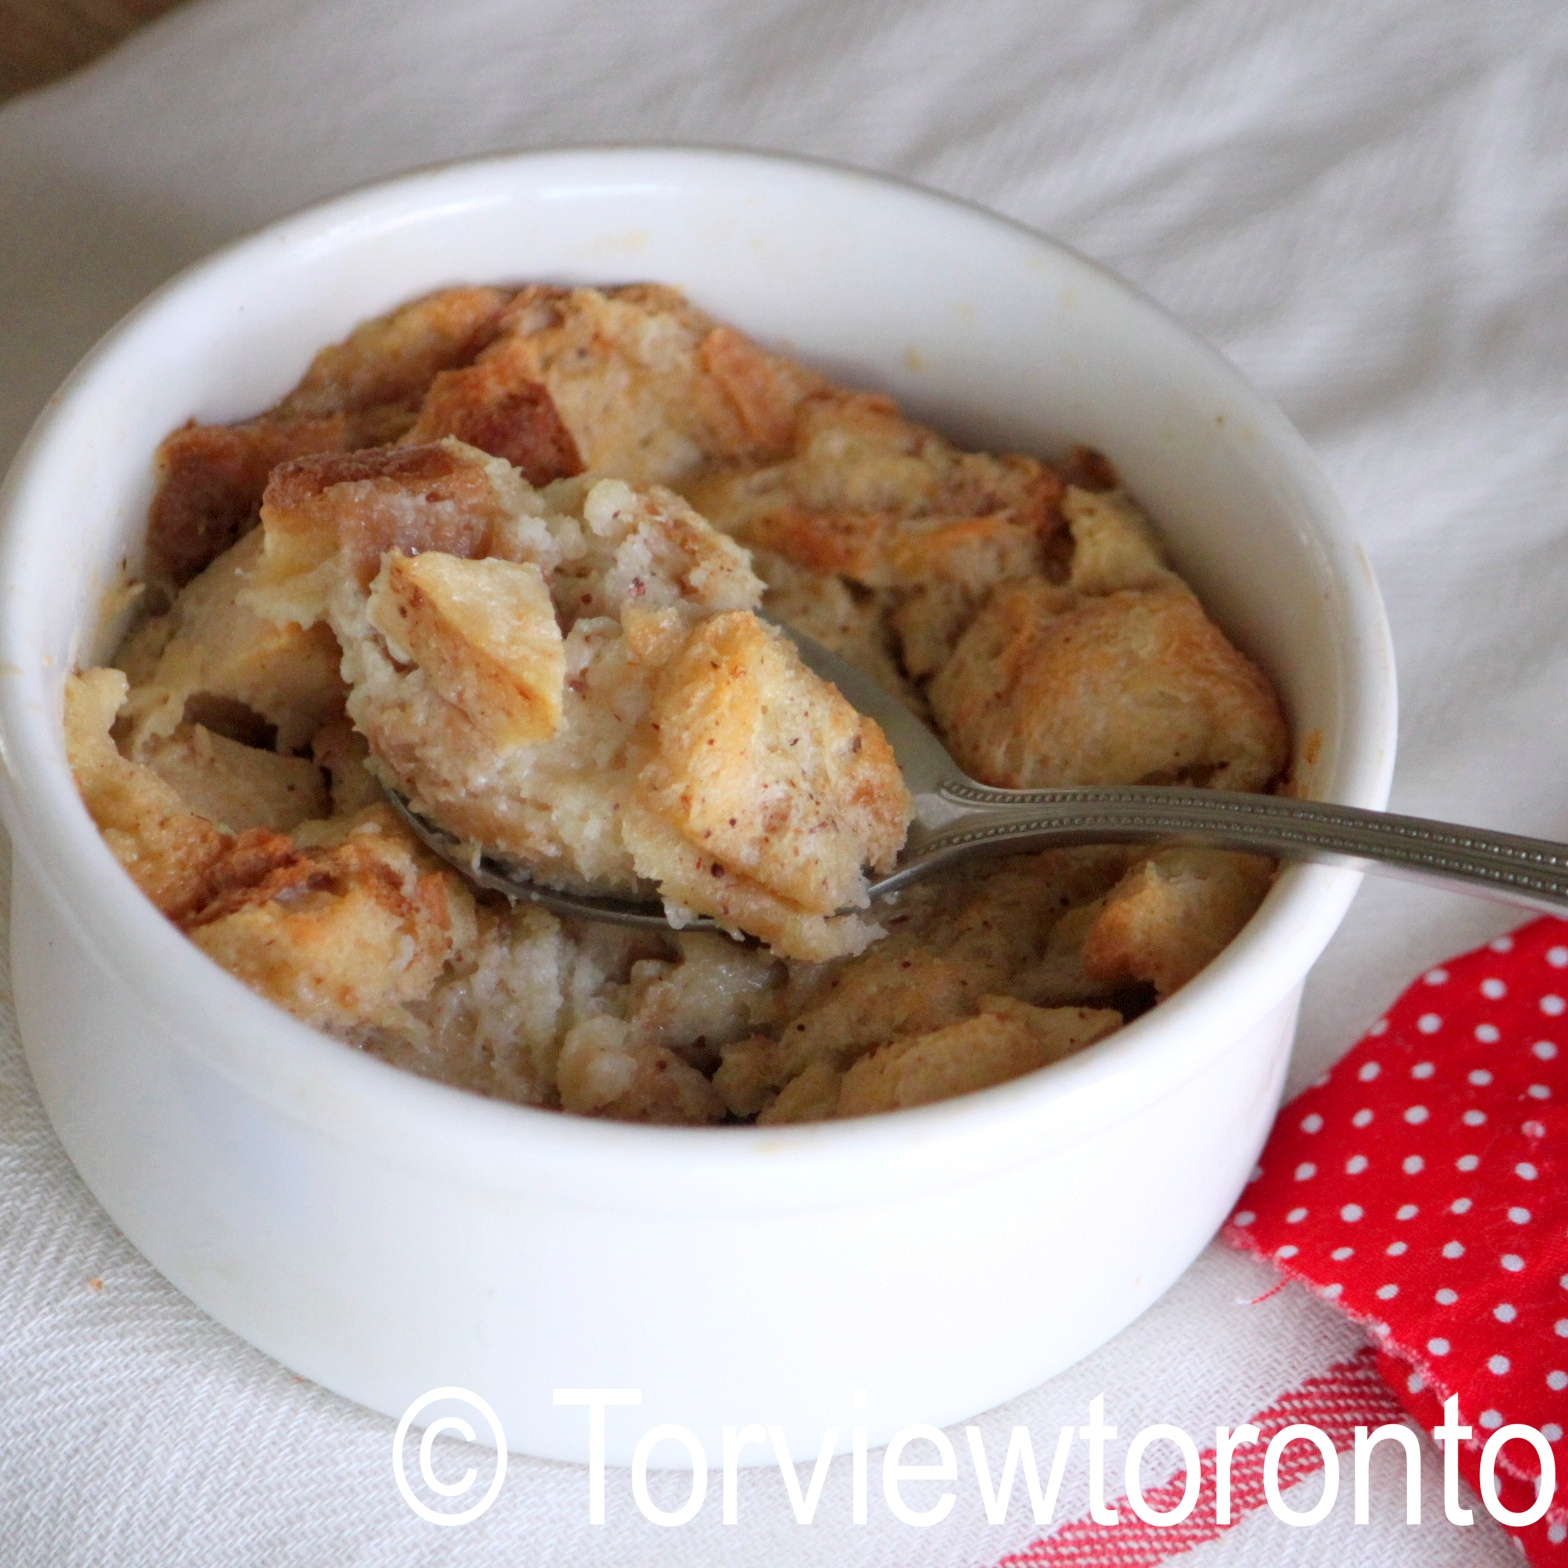 Torviewtoronto: Apple cinnamon bread pudding and butter bell crock